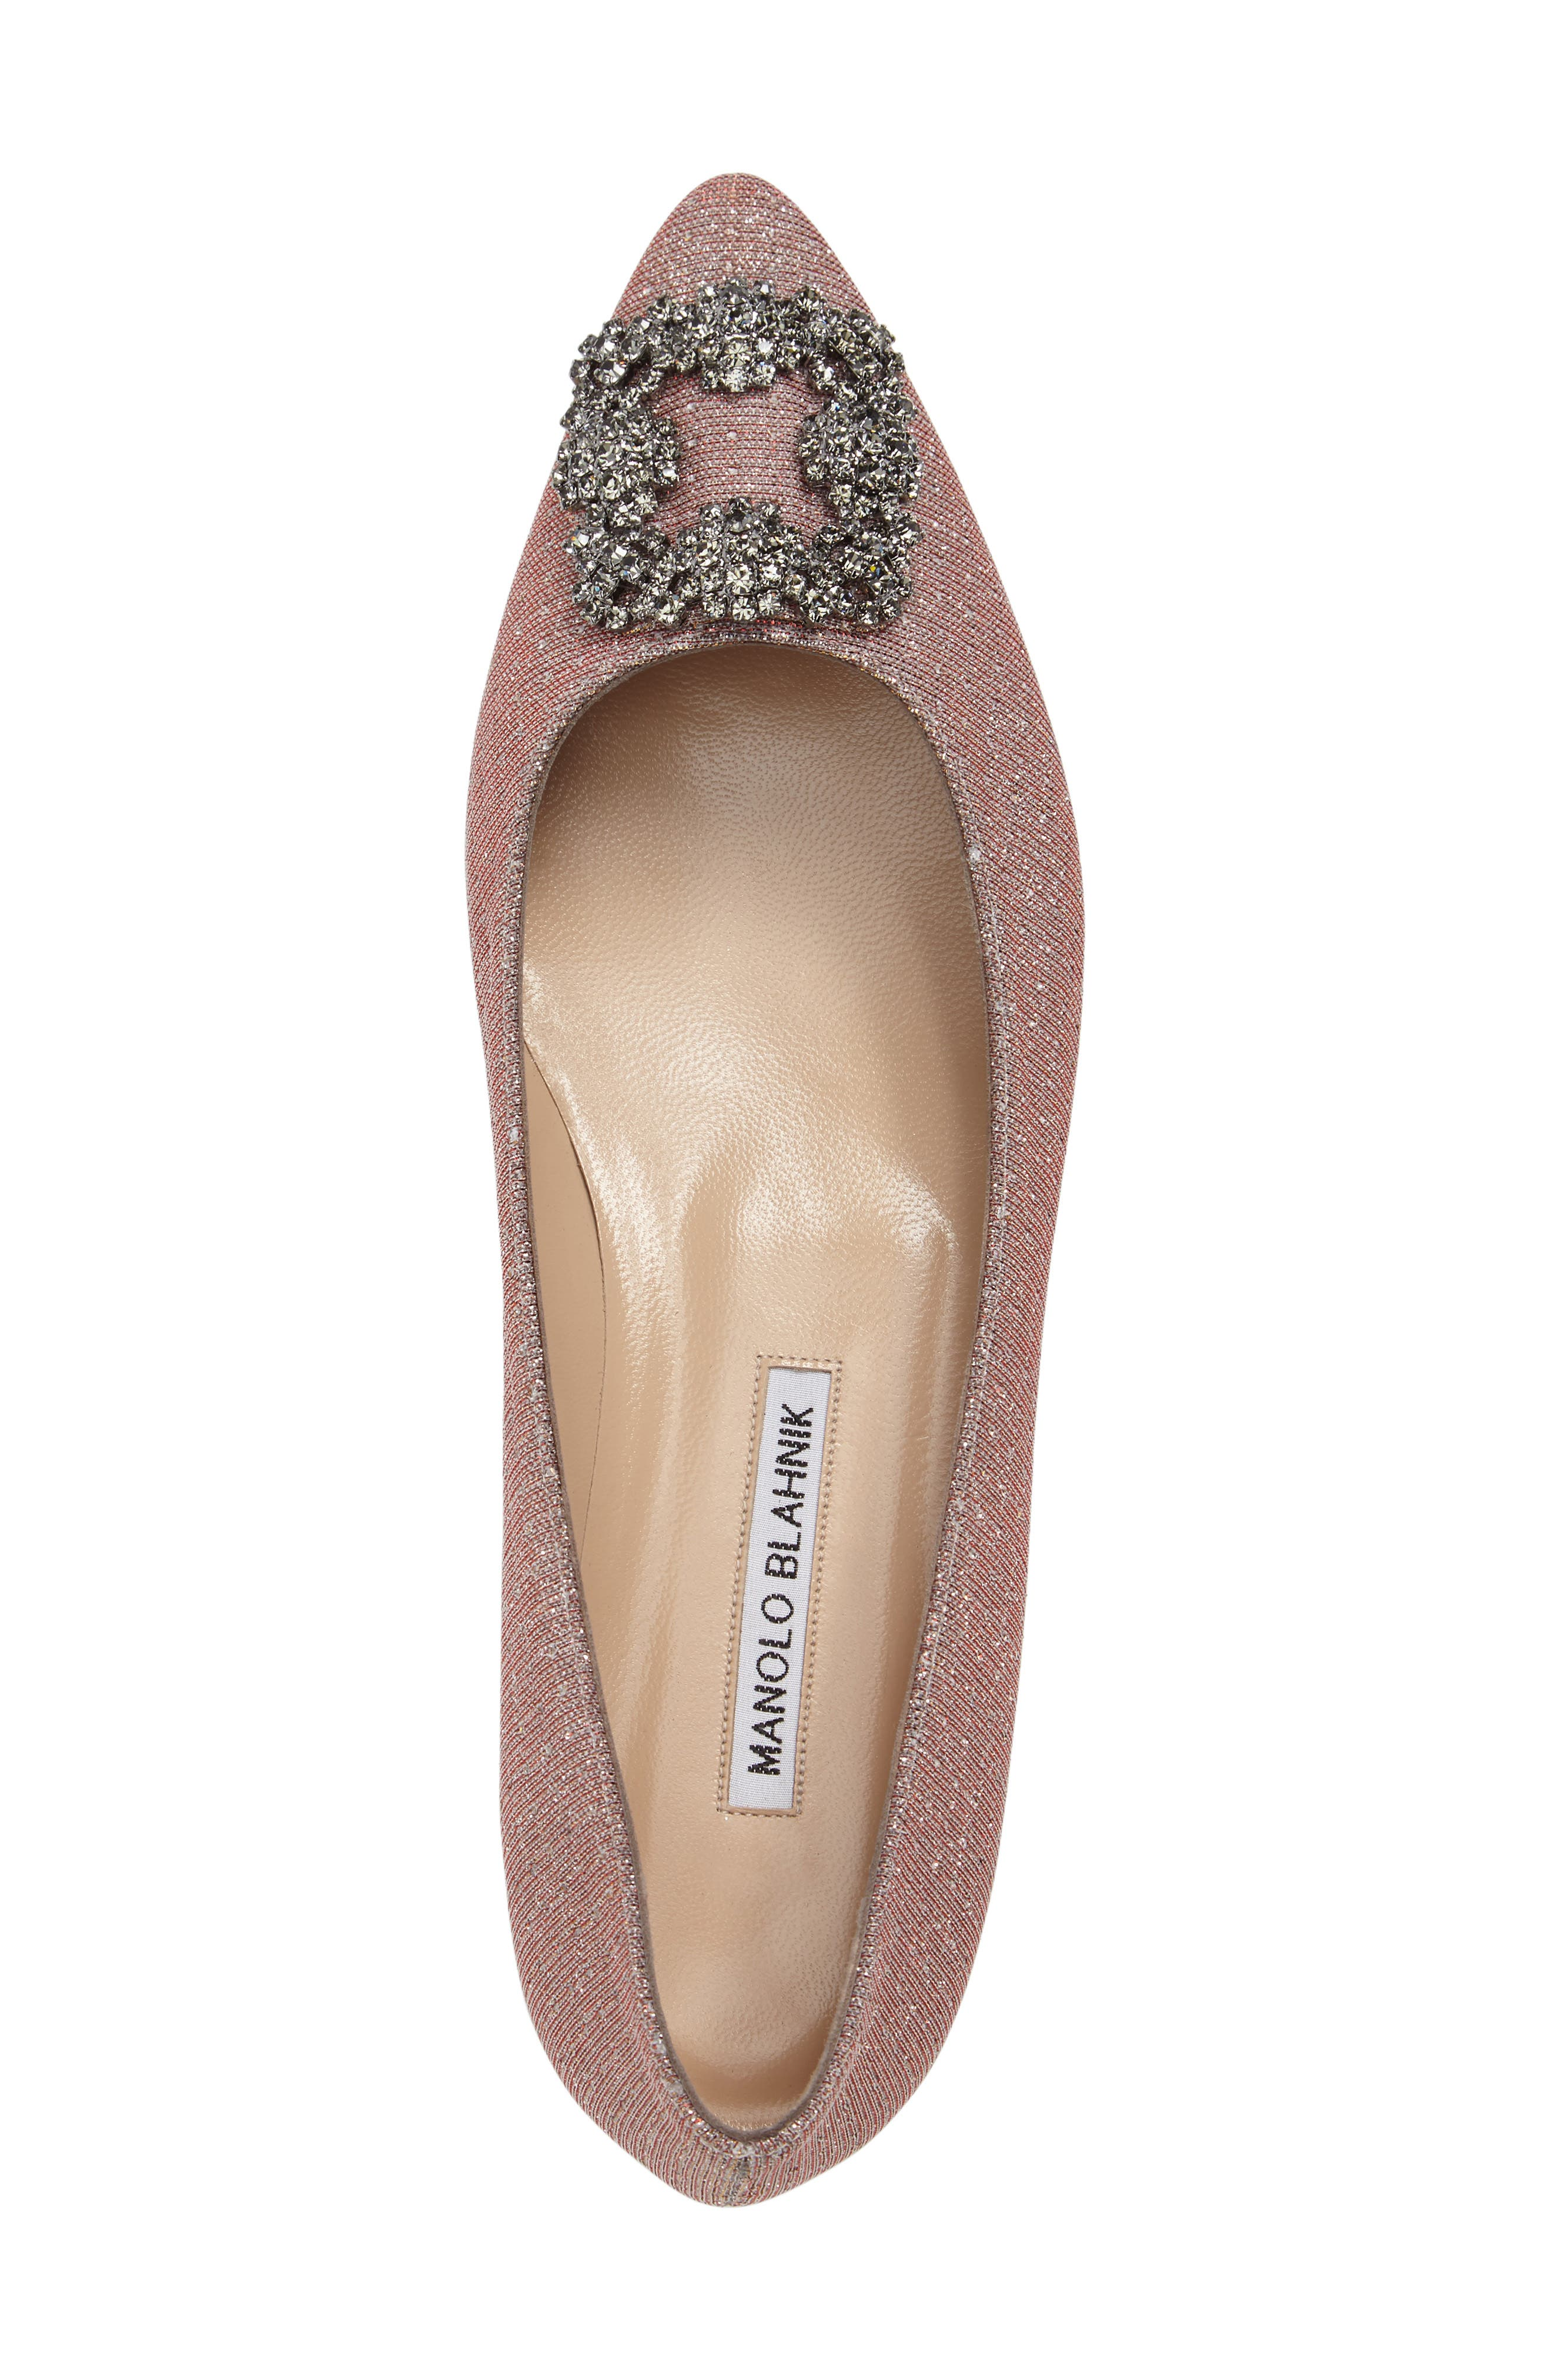 MANOLO BLAHNIK,                             'Hangisi' Jeweled Pointy Toe Flat,                             Alternate thumbnail 5, color,                             CHAMPAGNE FABRIC